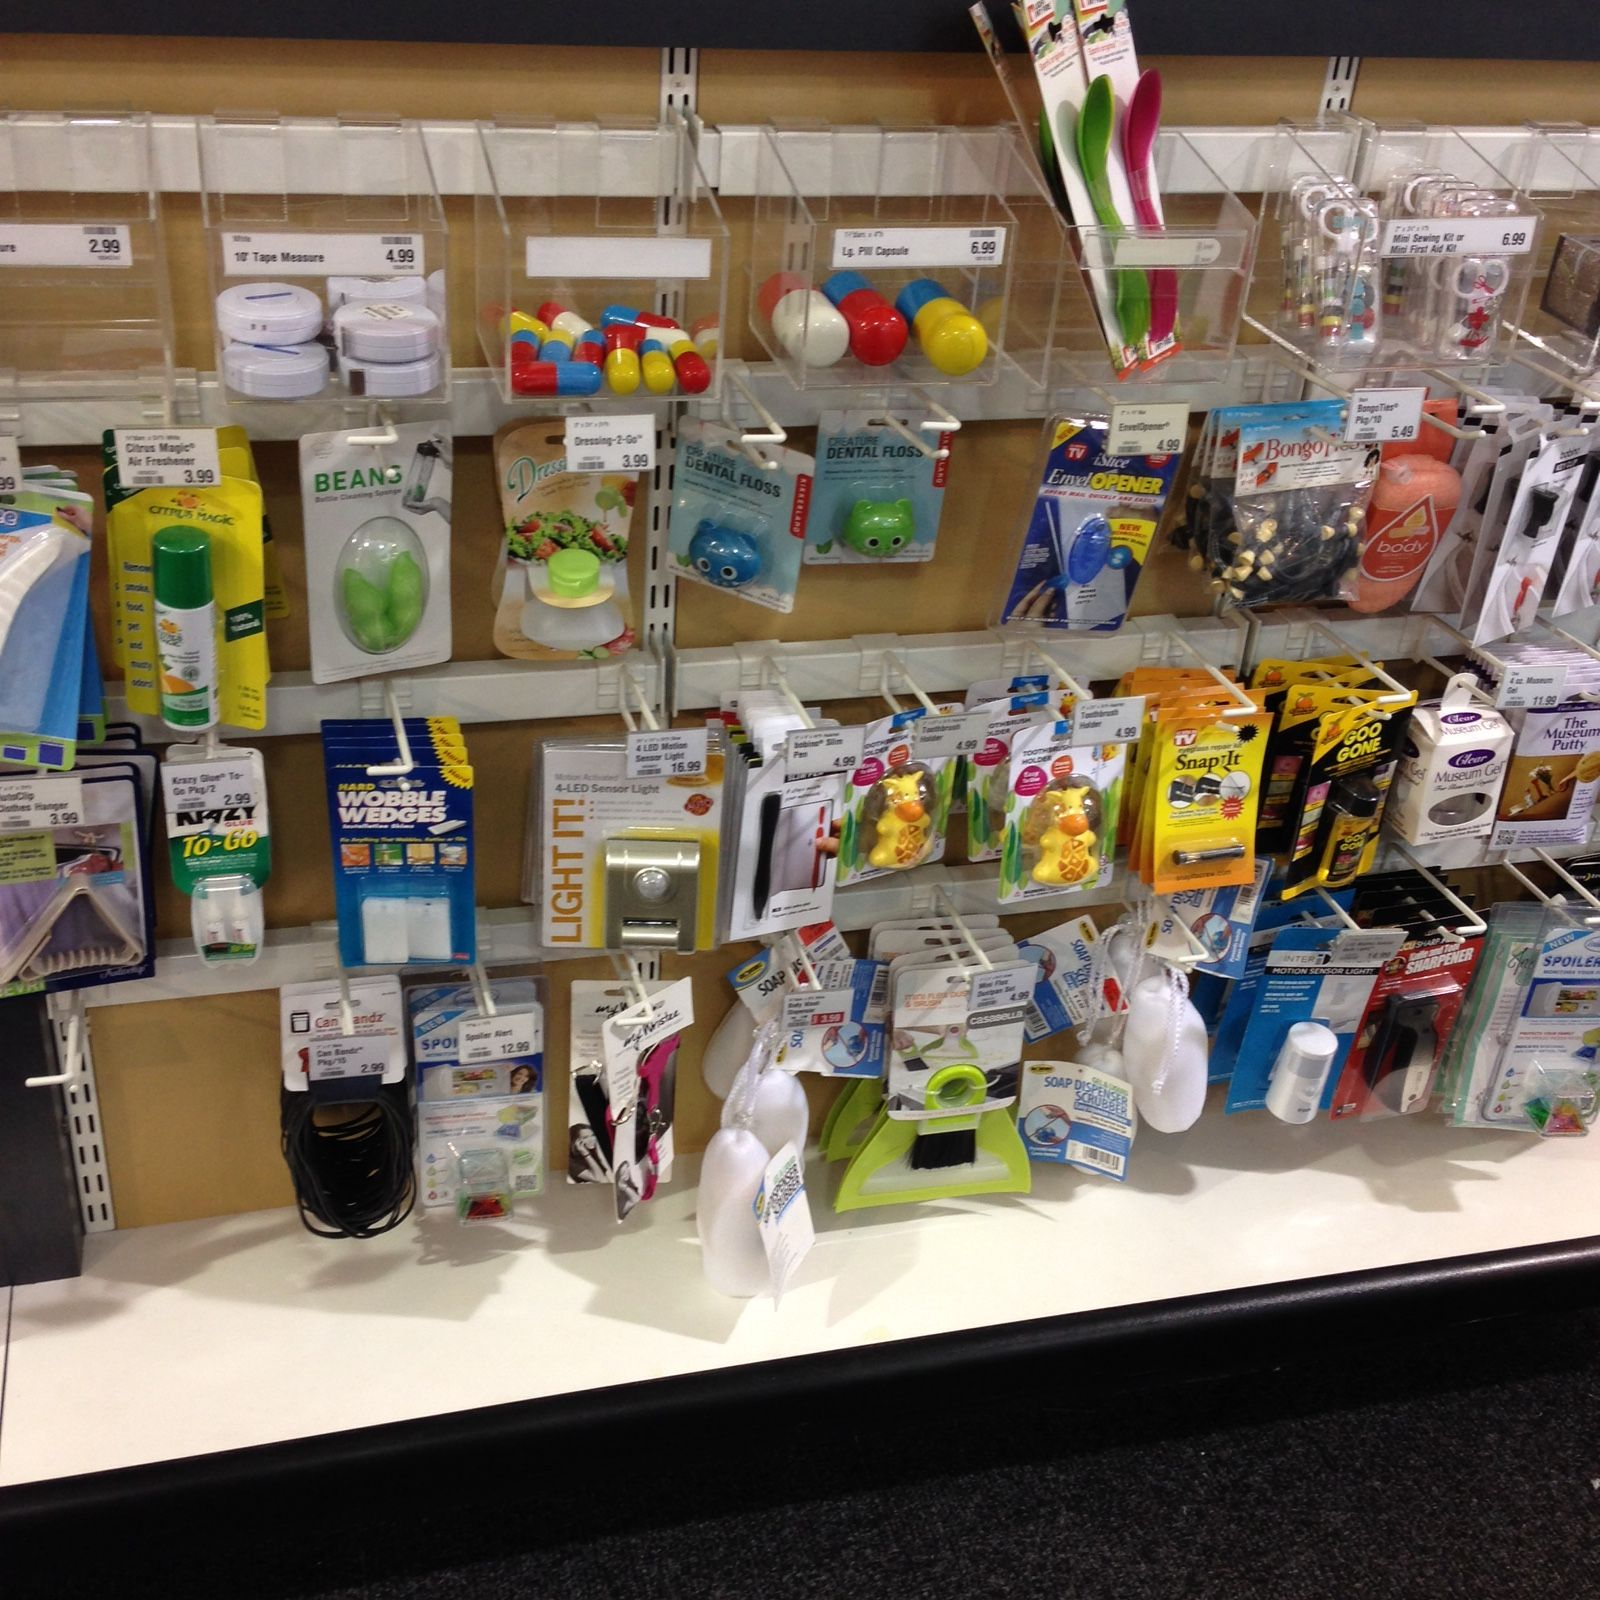 Some Fantastic Non Food Items For Checkout Goo Gone Mini Sewing Kits Mini First Aid Kits And More The Conta Mini First Aid Kit Mini Sewing Kit Food Items